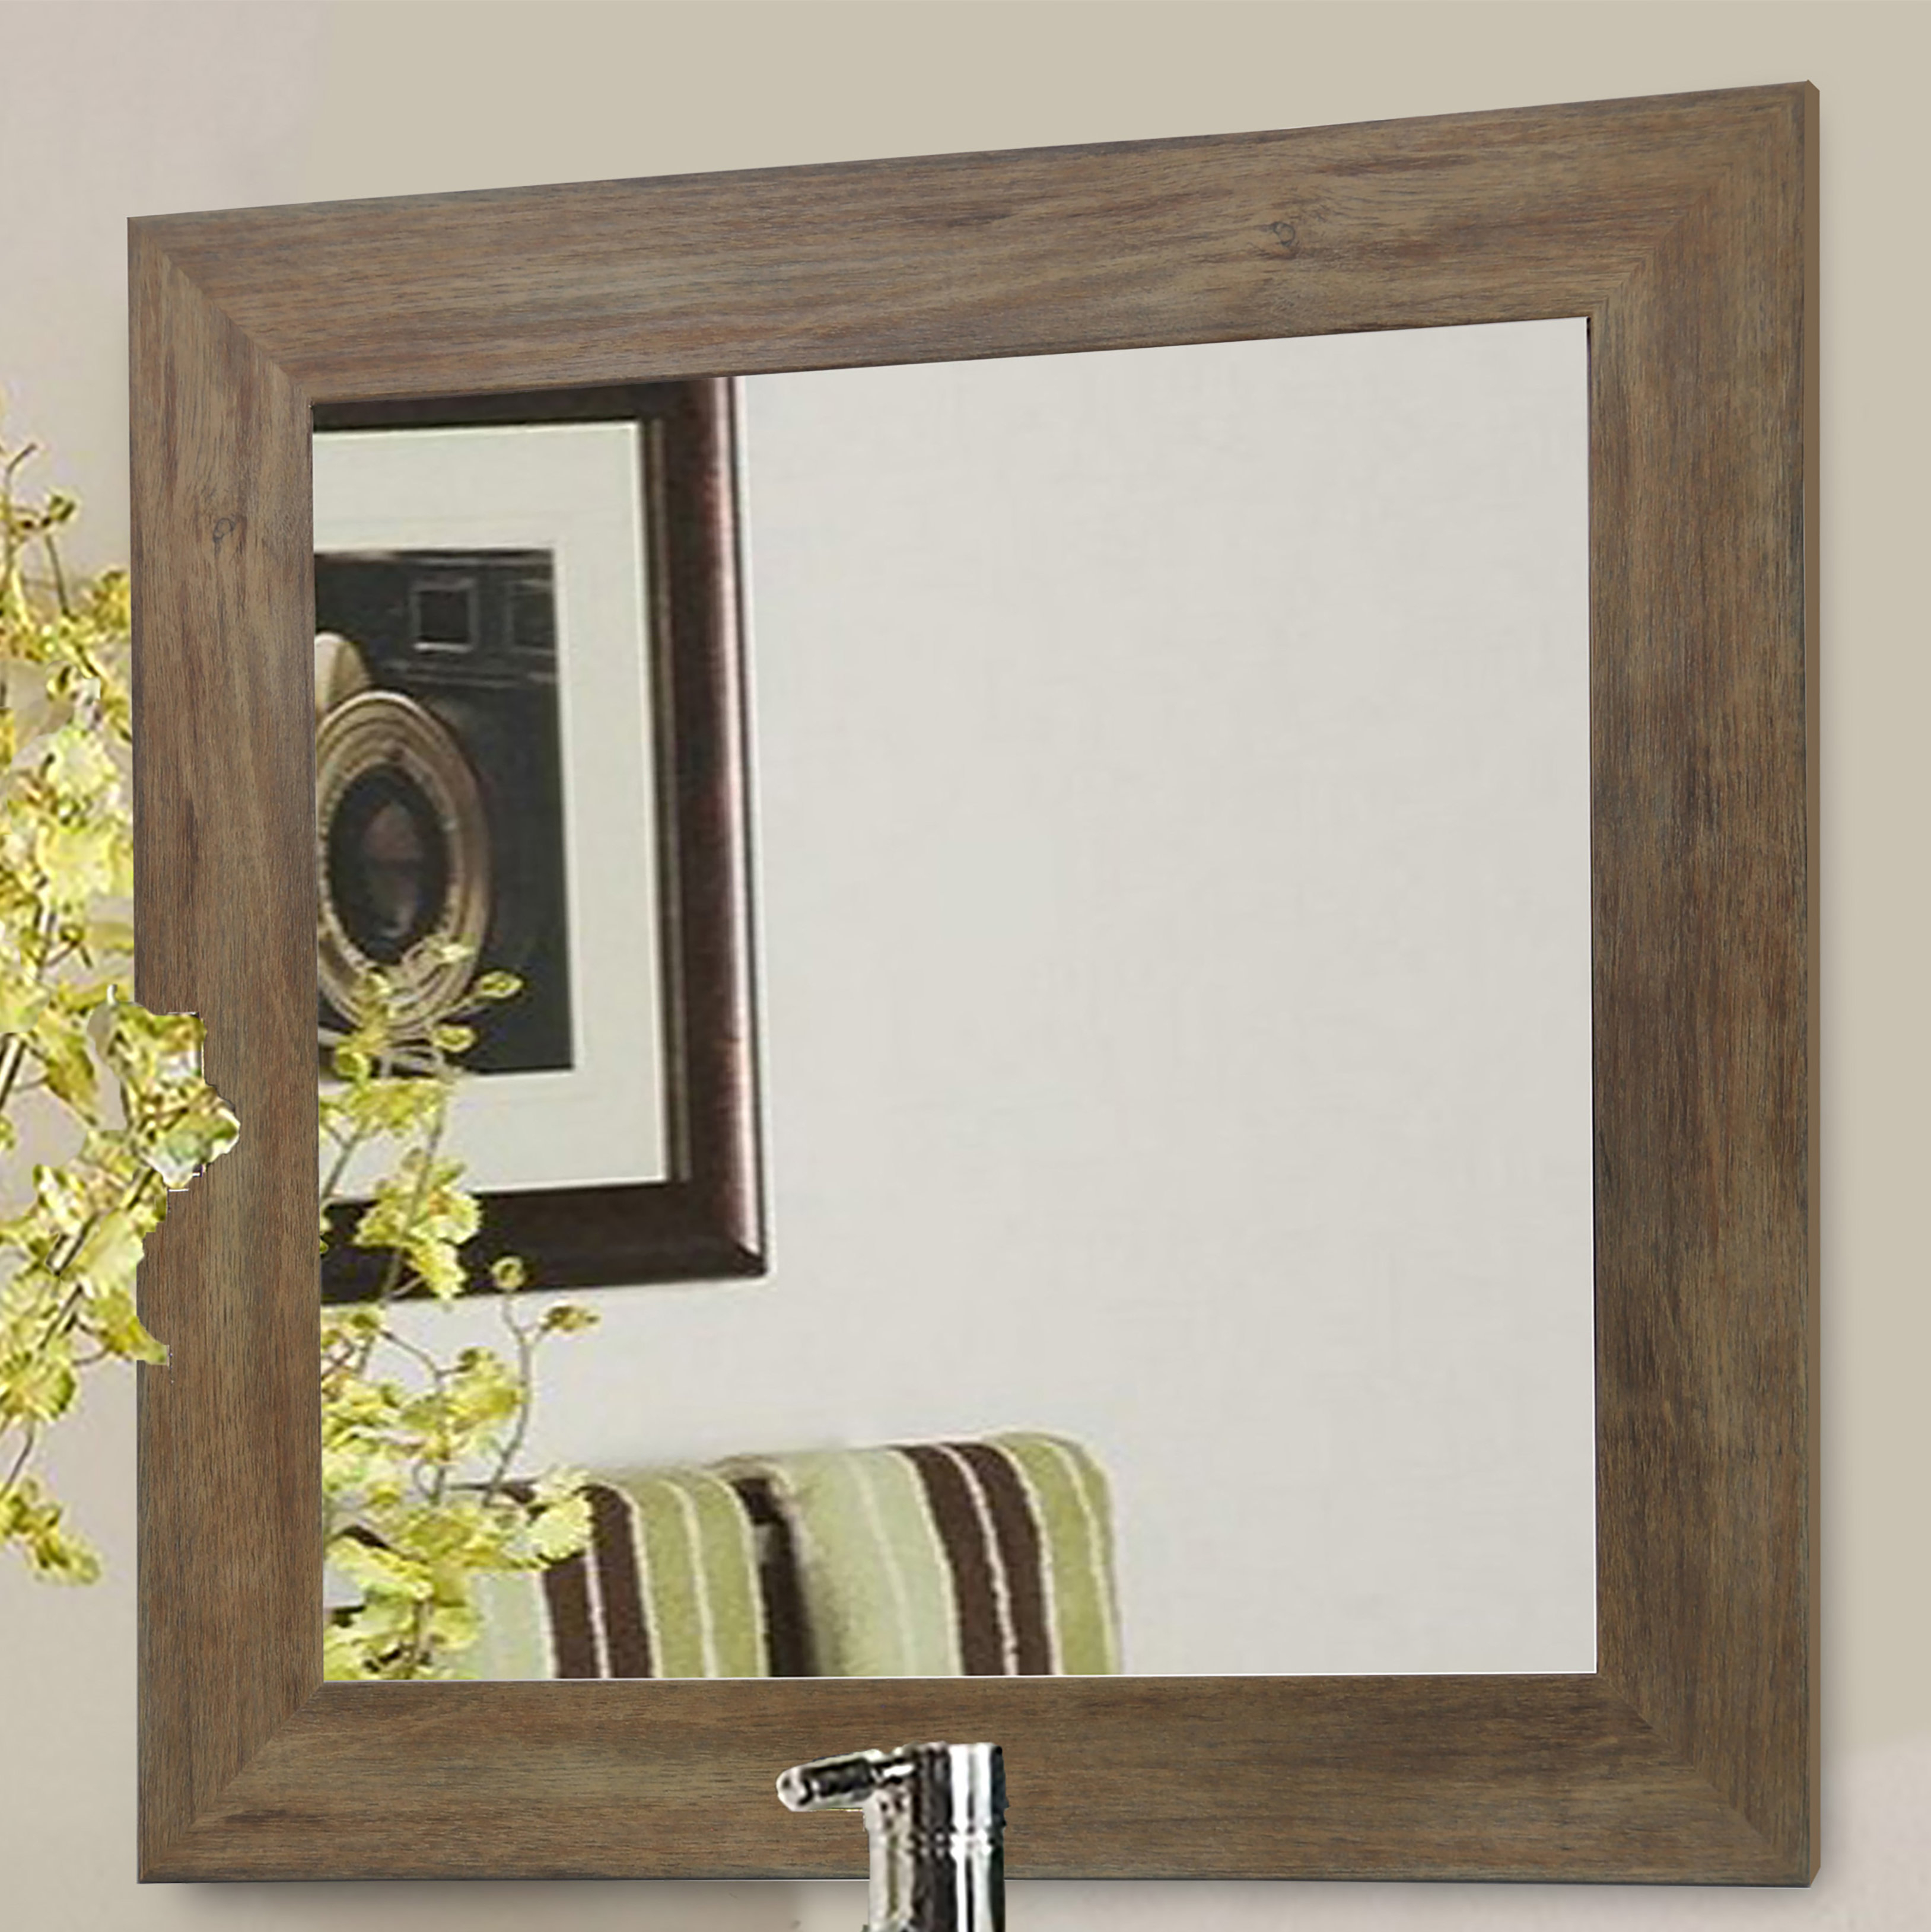 Barnwood Wall Accent Mirror Intended For Berinhard Accent Mirrors (Image 5 of 20)